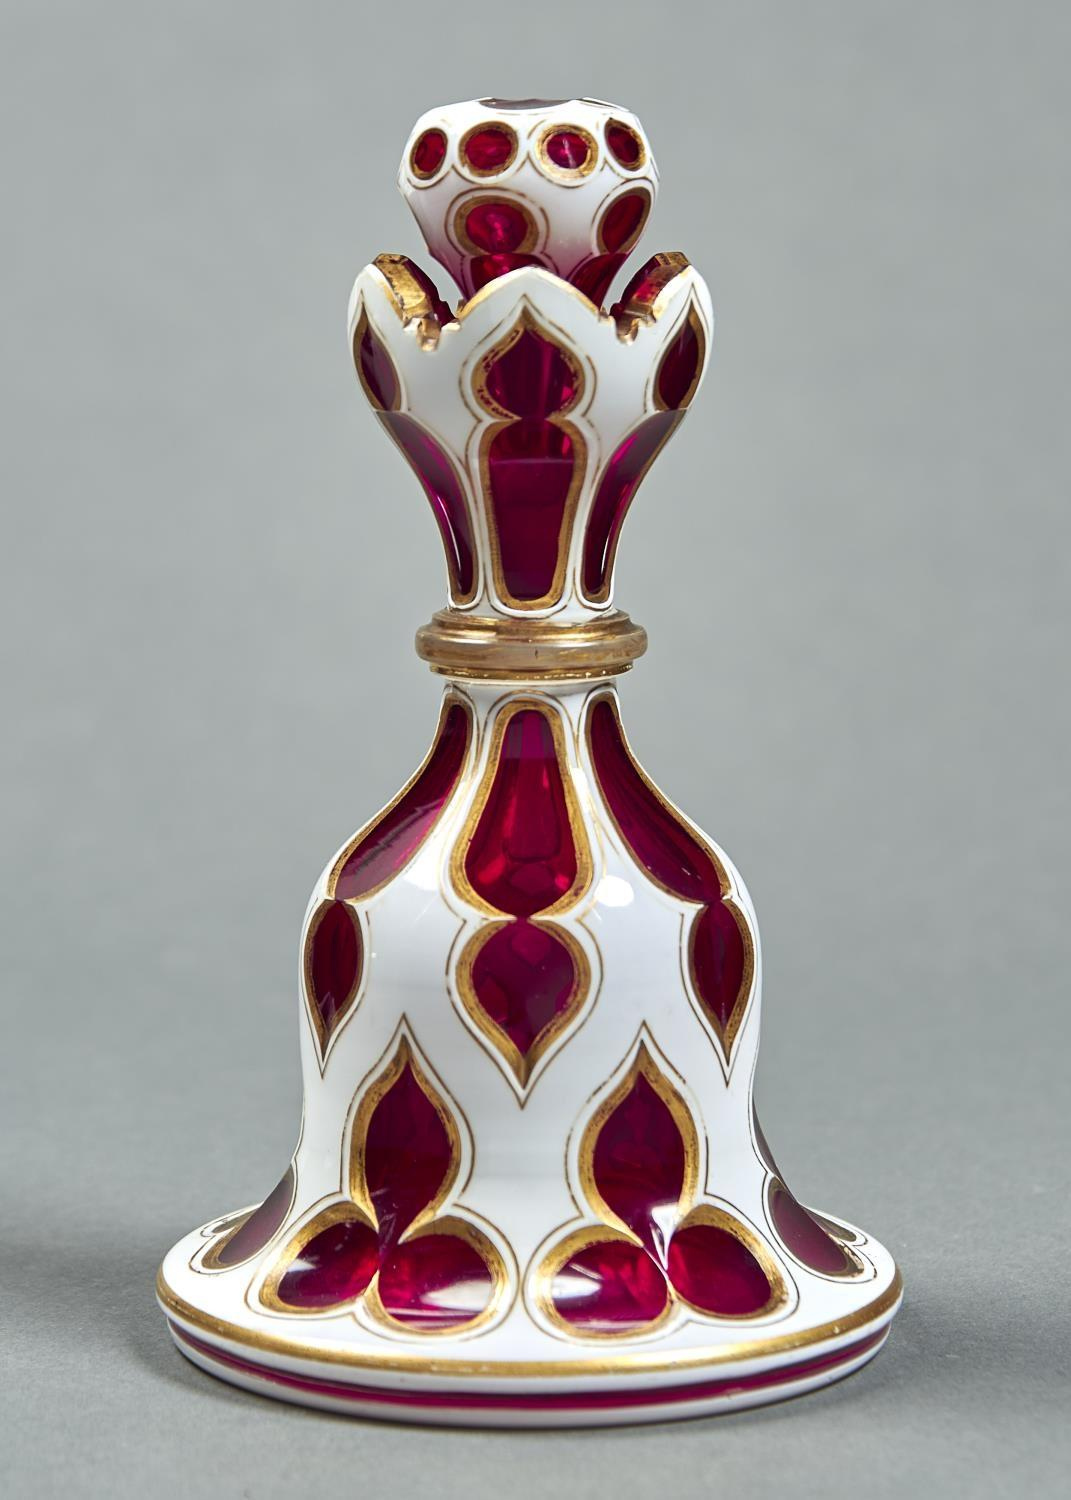 A CASED GLASS SCENT BOTTLE AND STOPPER, MID 19TH C, OF RUBY GLASS CASED IN WHITE AND GILT, BELL